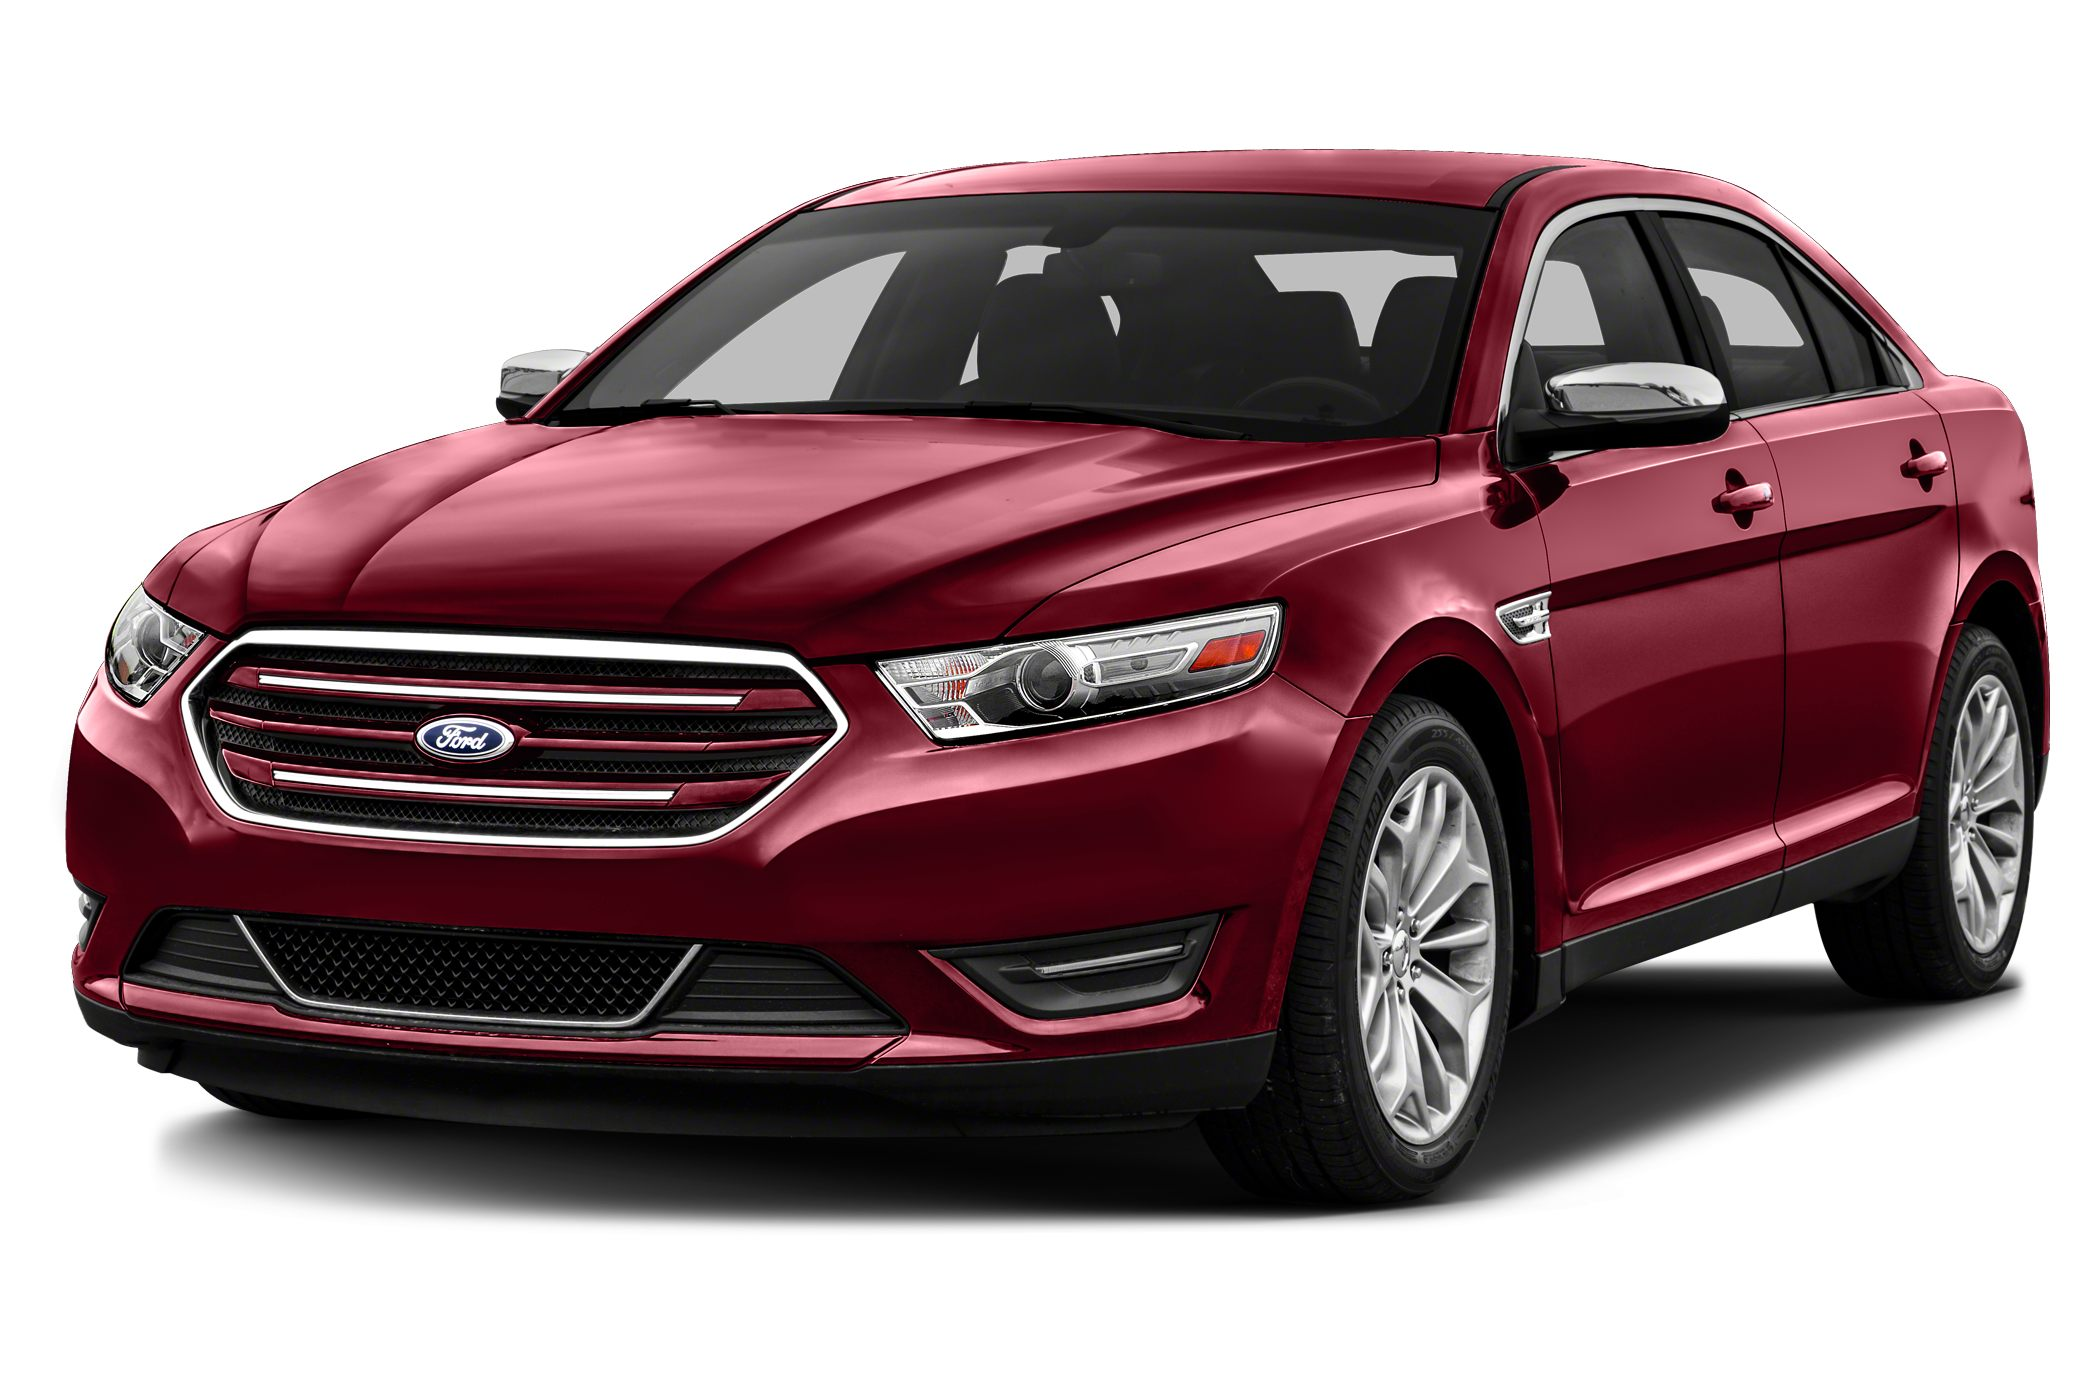 2013 ford taurus safety features